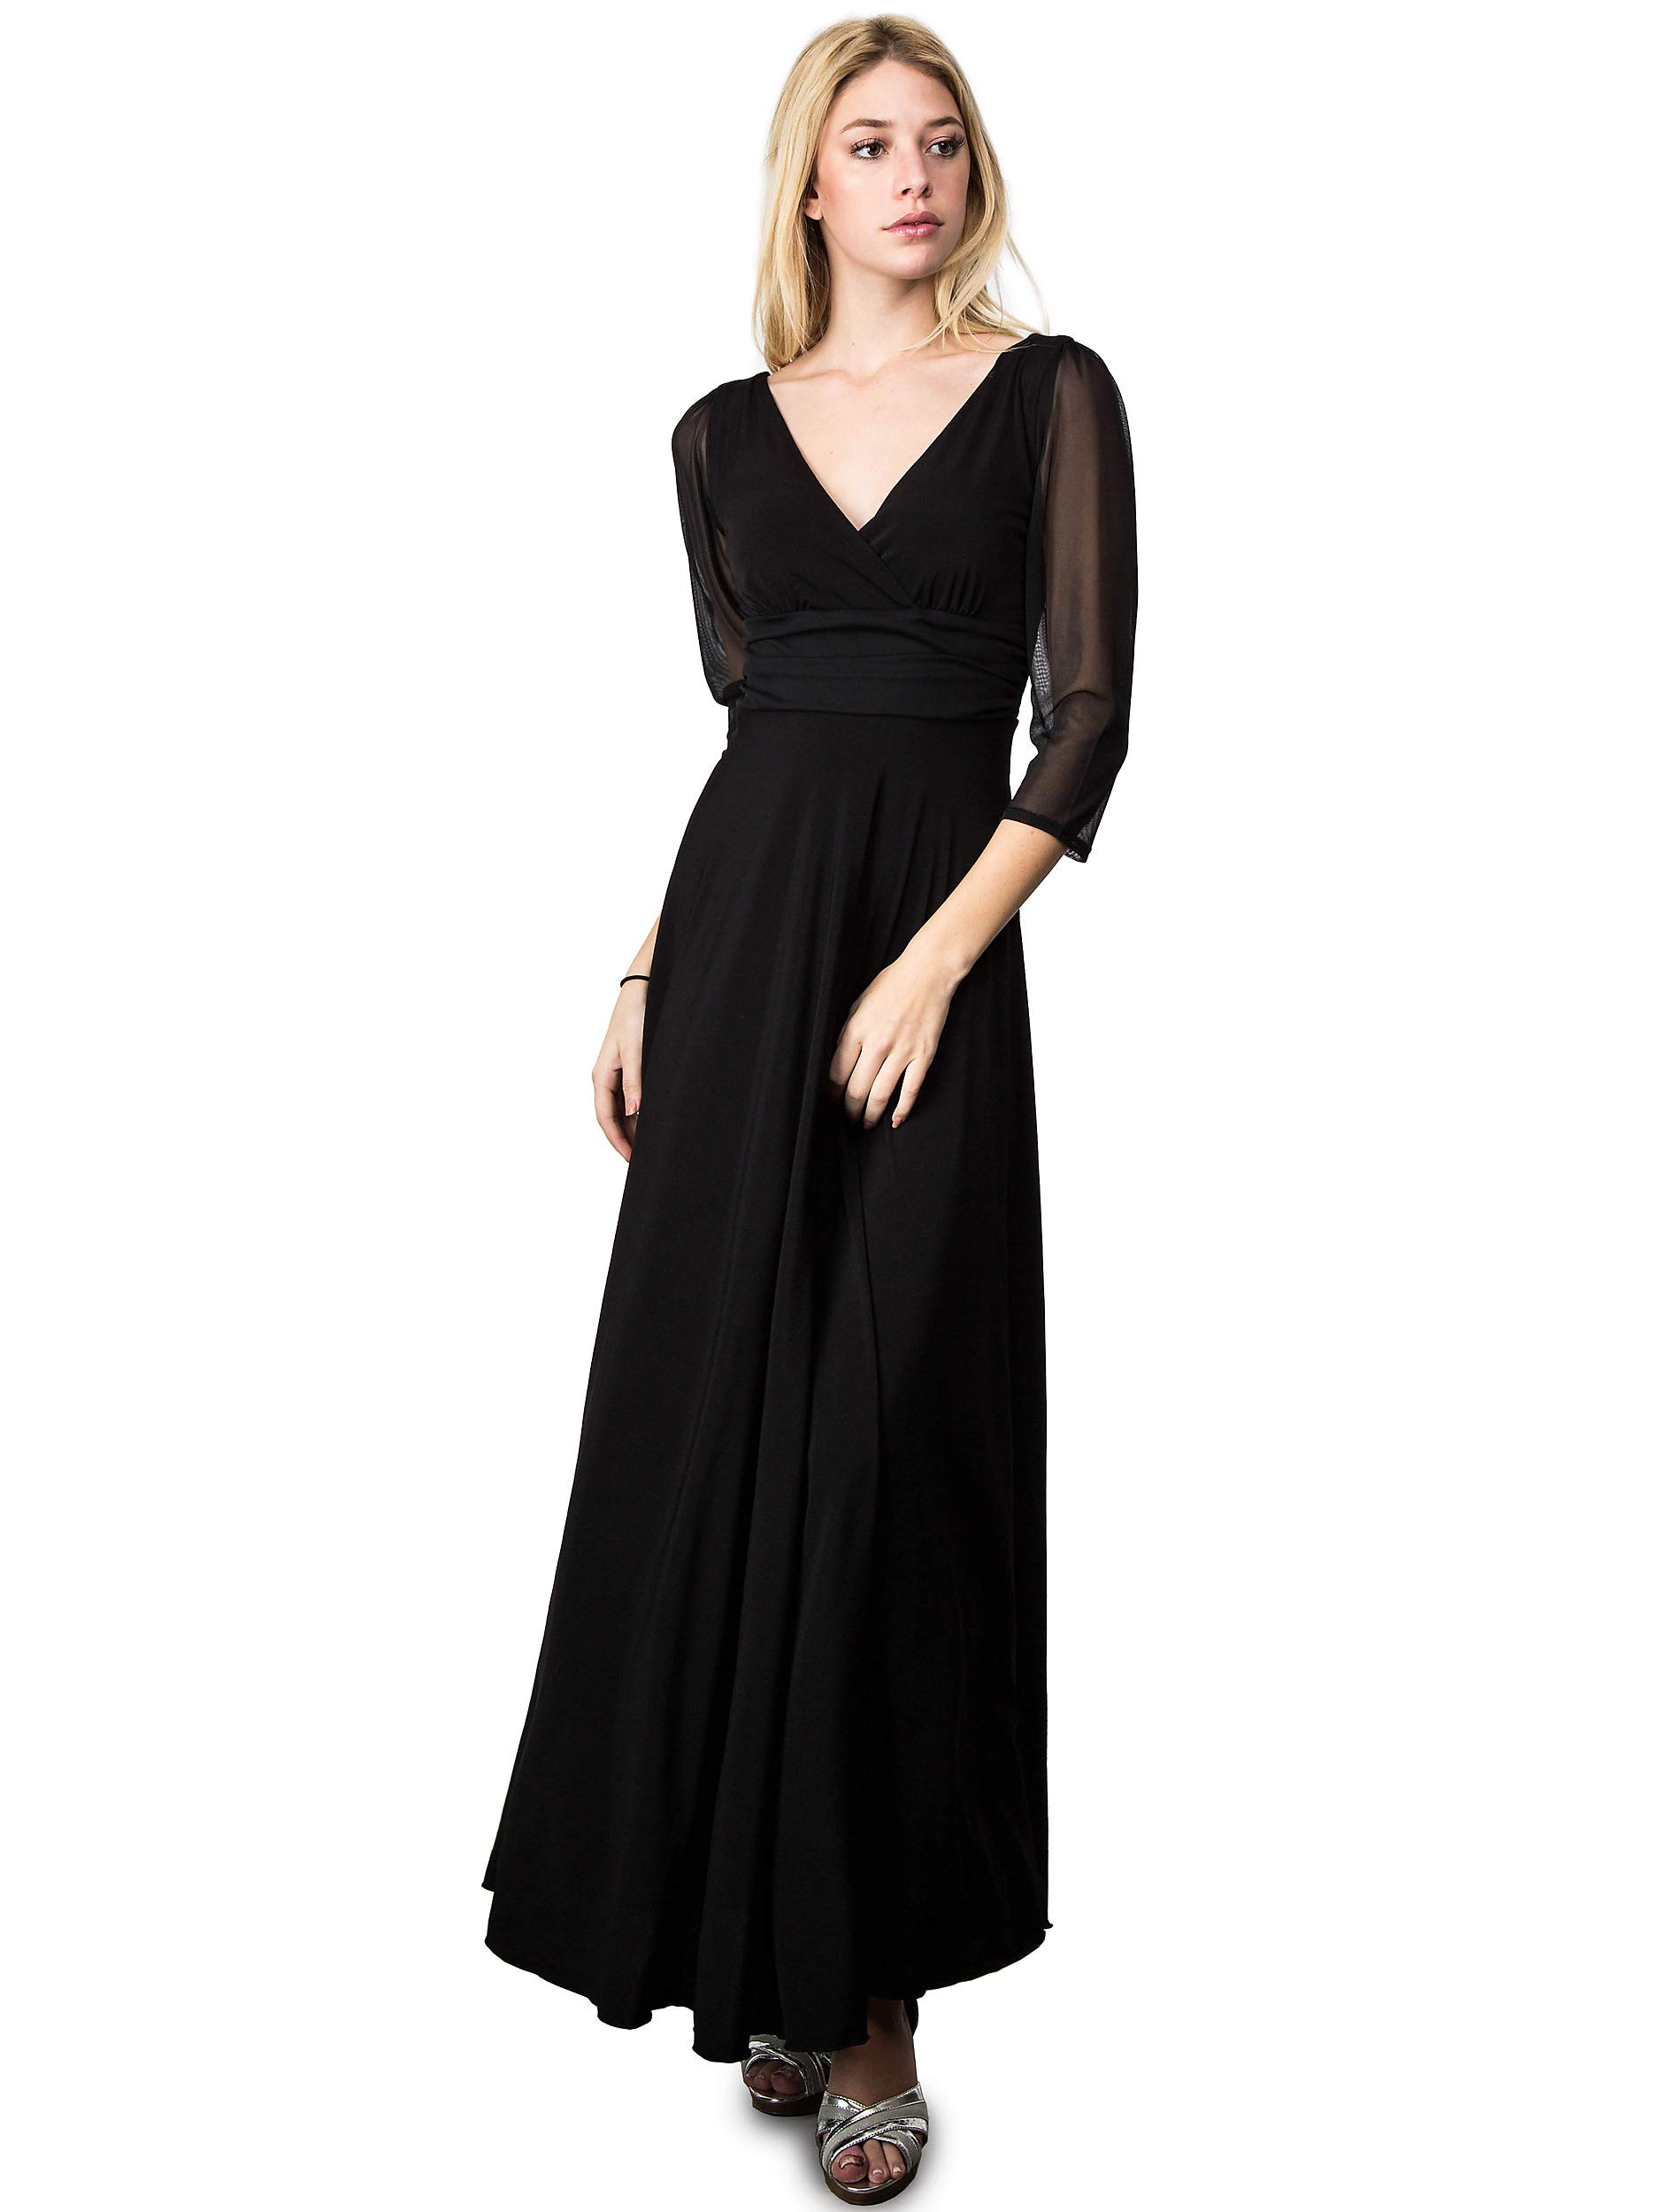 EVANESE Women\'s Plus Size Evening Party Formal Long Dress ...